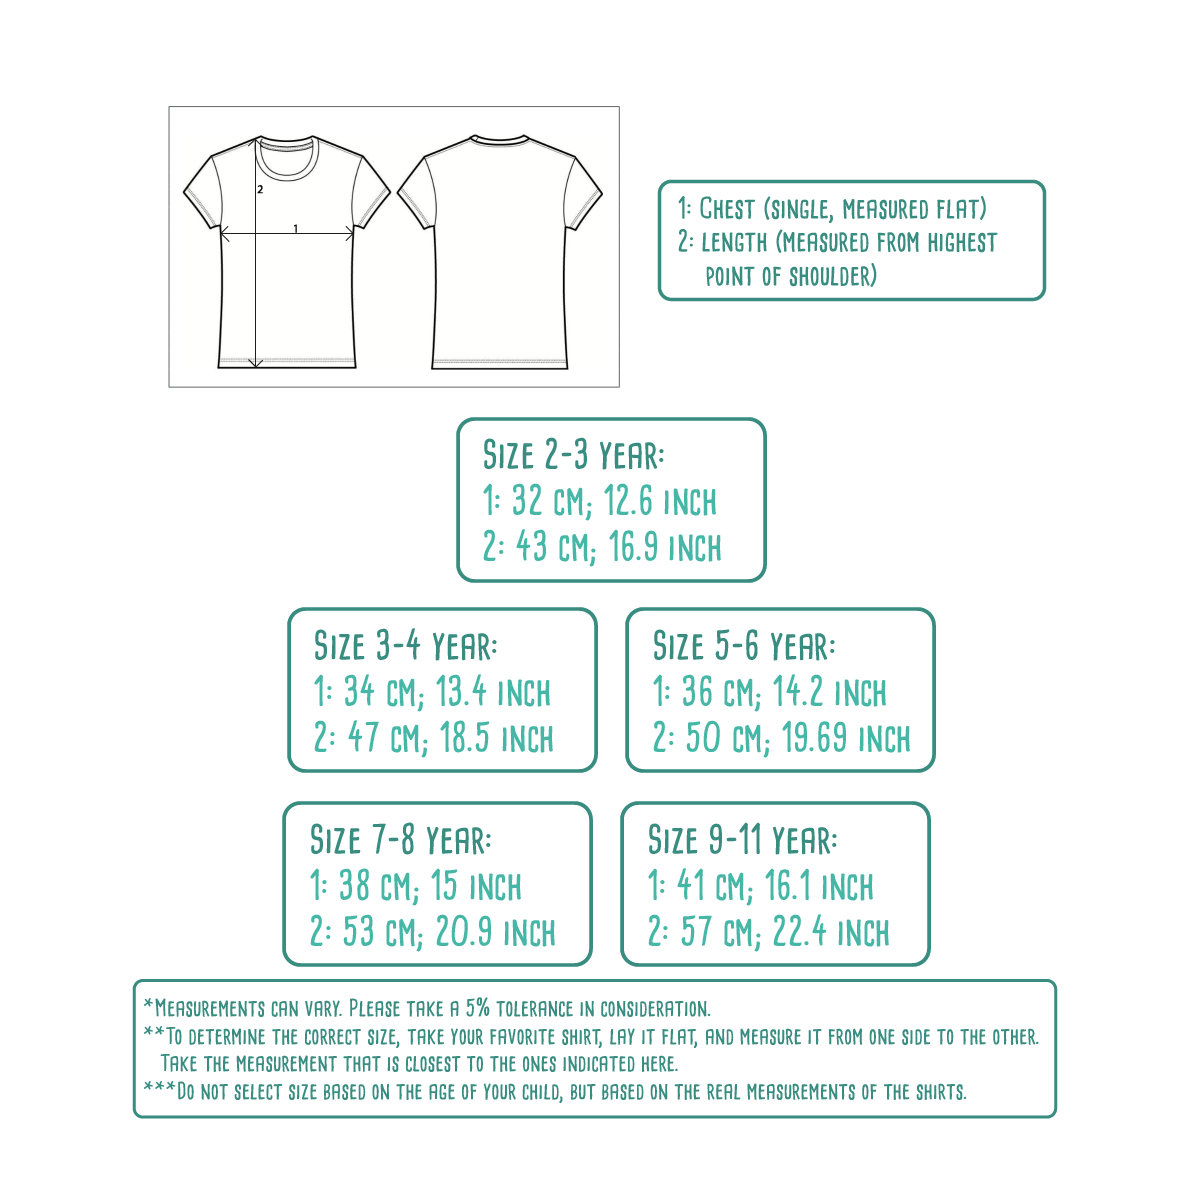 Size table for kids shirts with short sleeves by KMLeon.